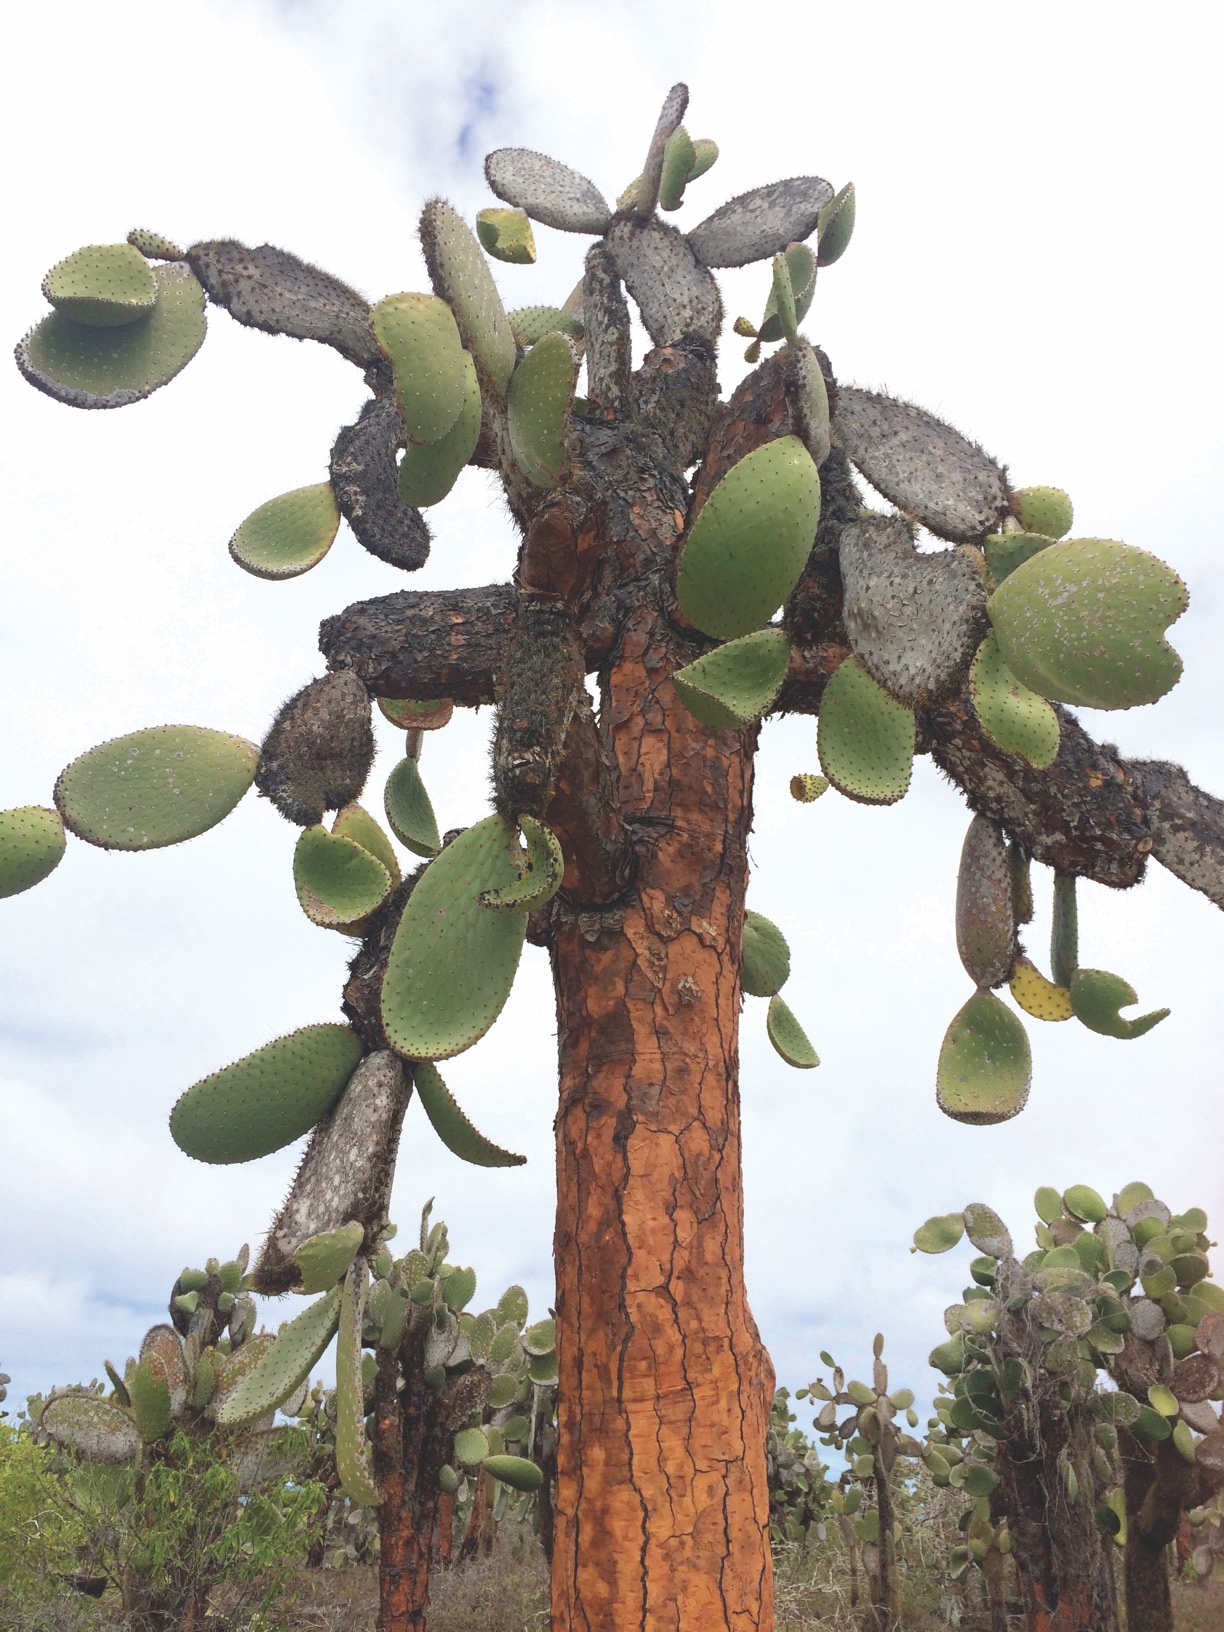 A full grown Opuntia echios, known as the   Galápagos prickly pear